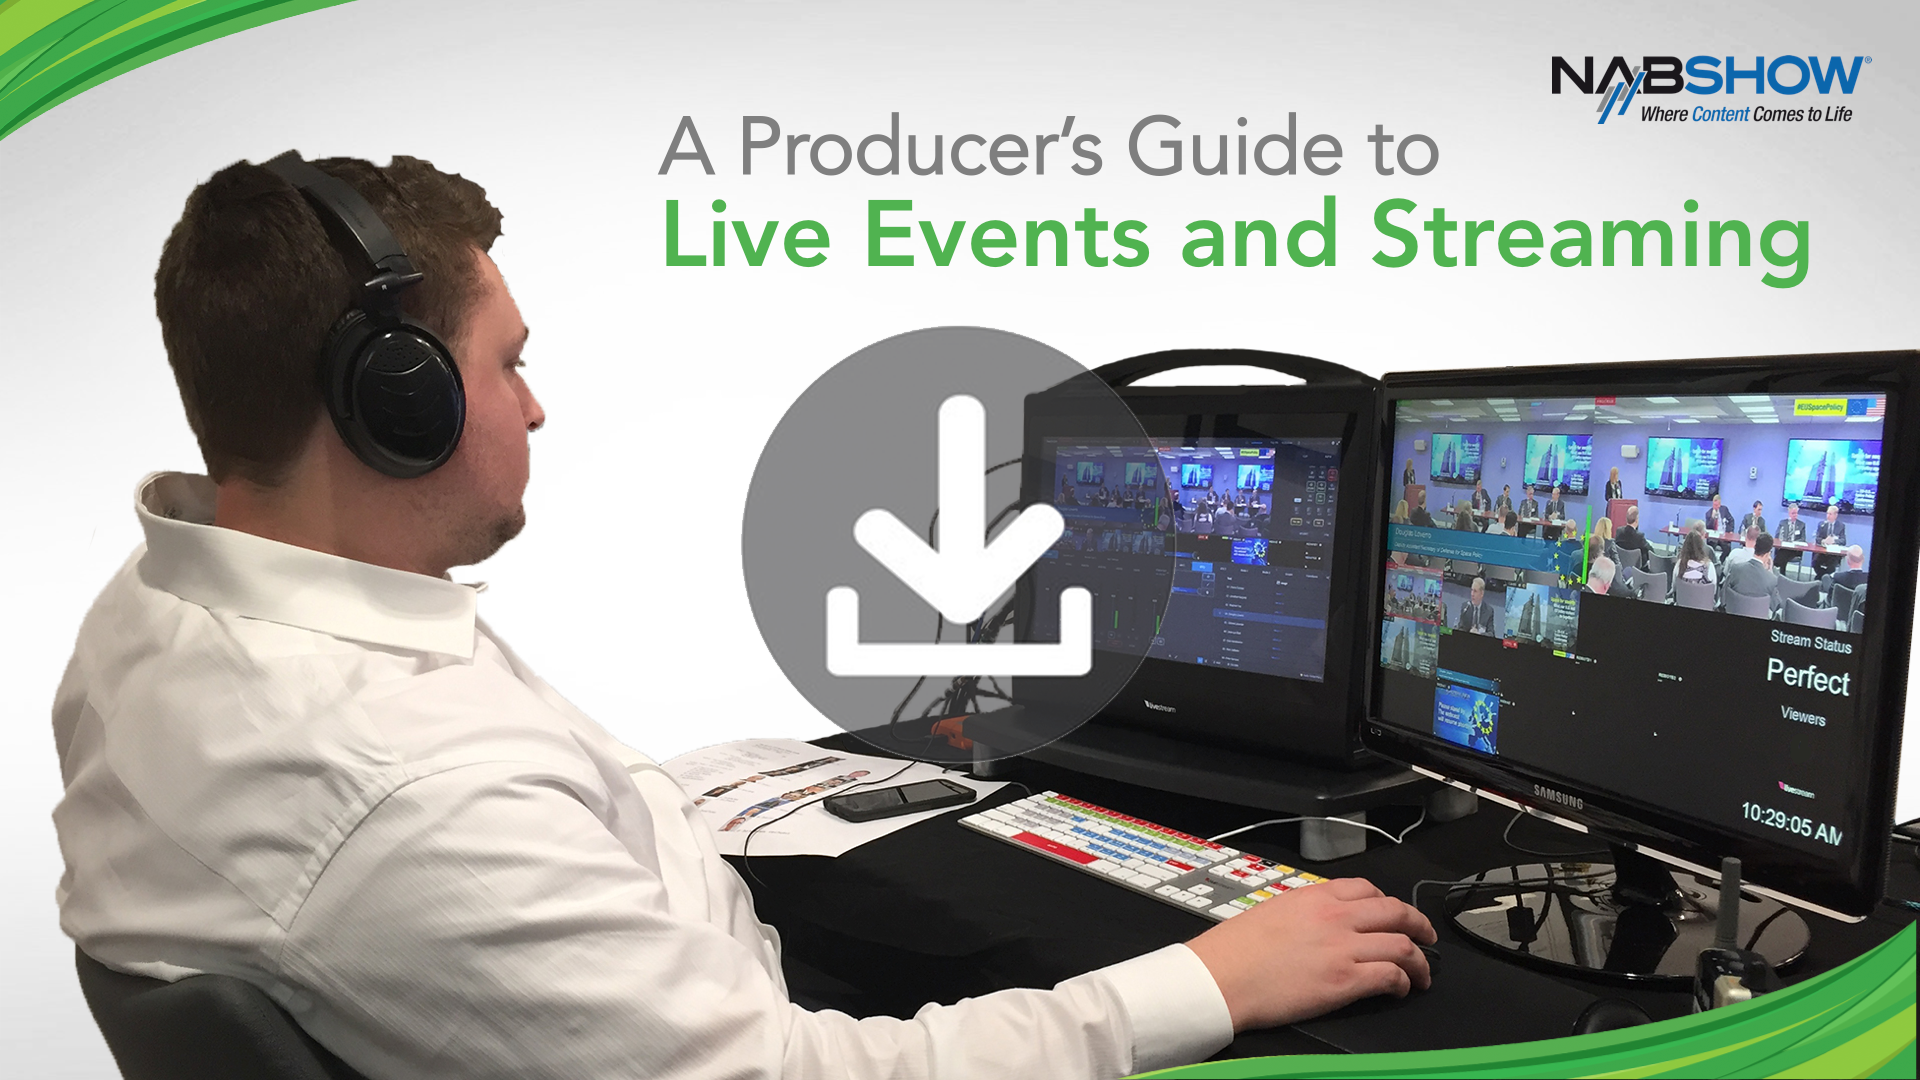 Information and advice about video, audio, webcasts and more